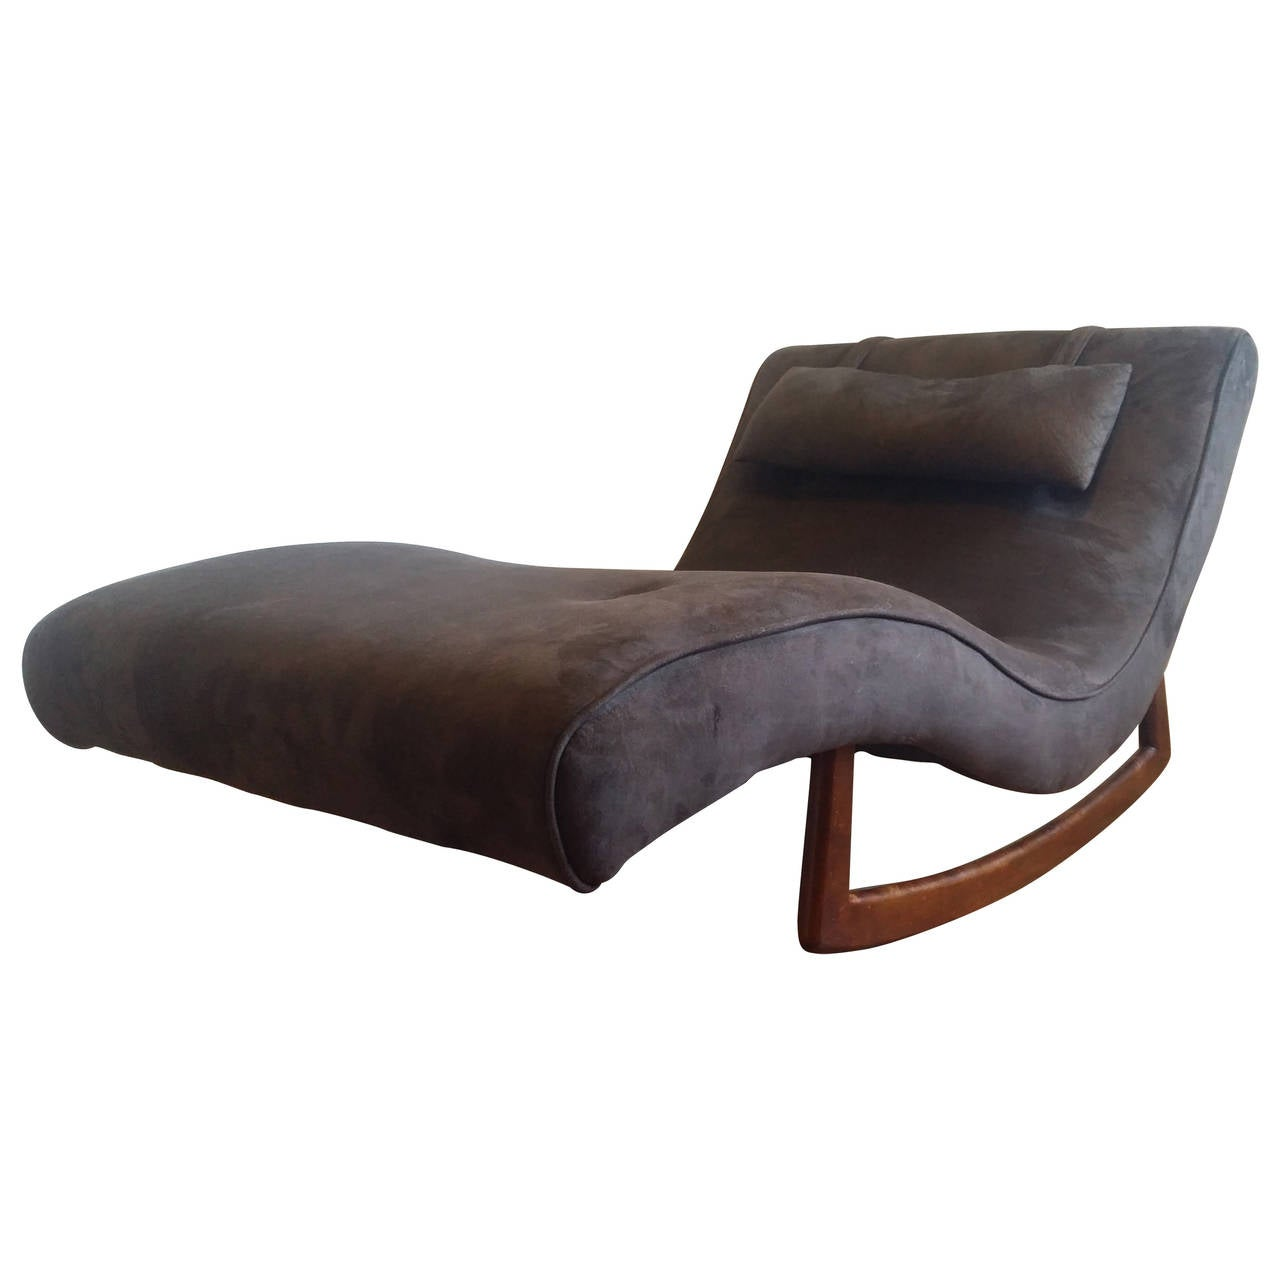 Adrian pearsall wave chaise rocker for craft associates at for Adrian pearsall rocking chaise